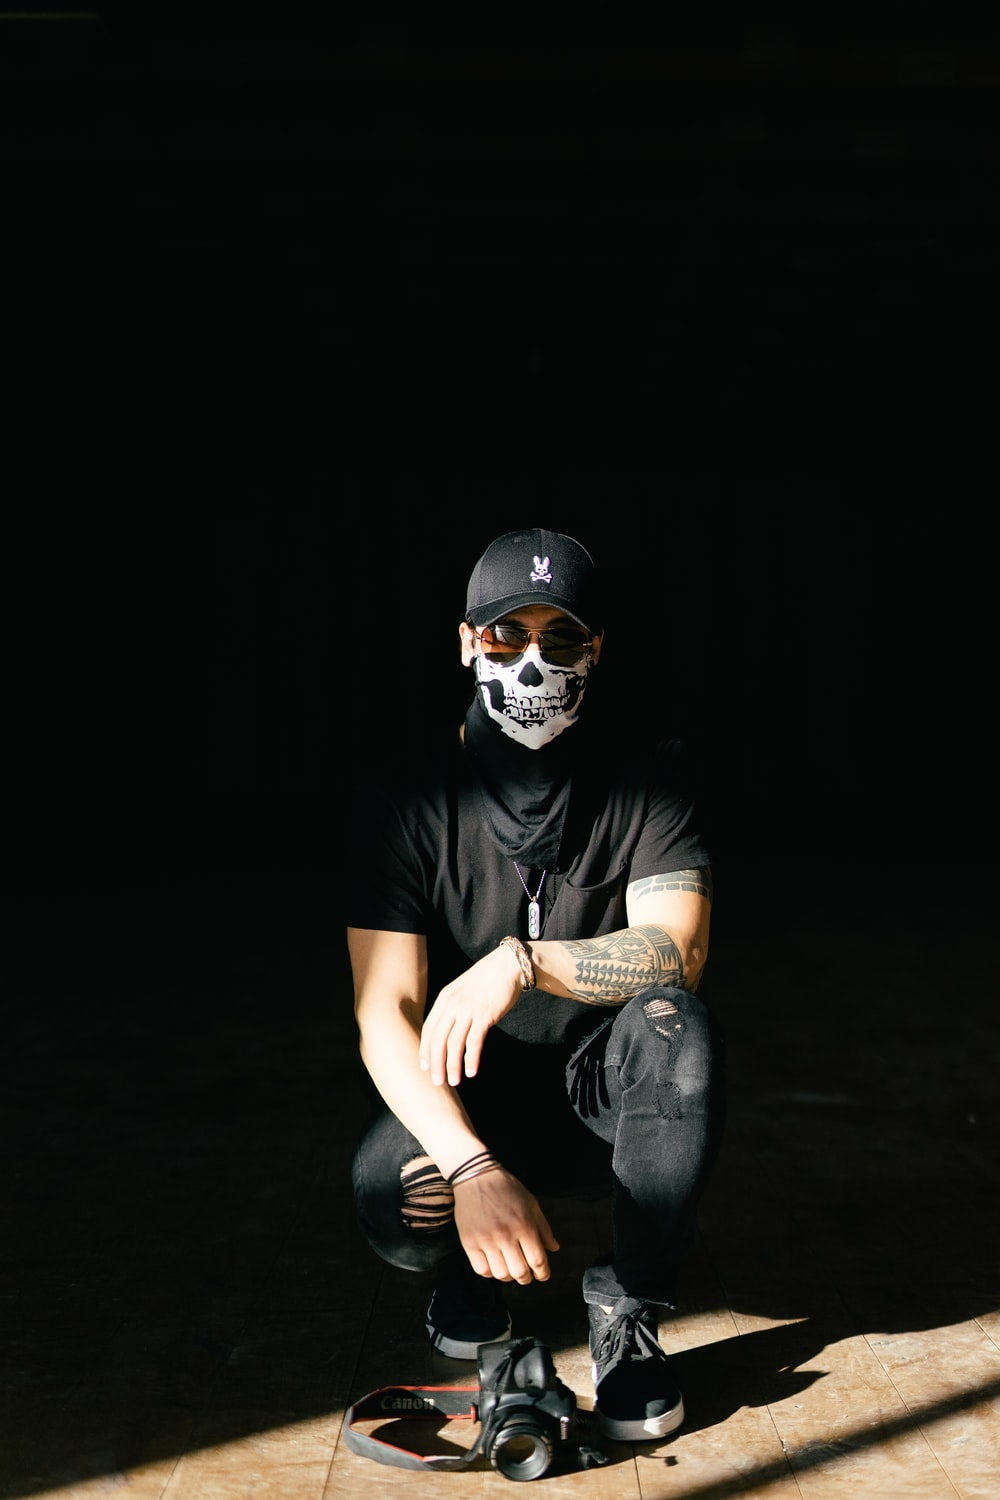 man in black crew neck t-shirt and blue denim jeans wearing white mask